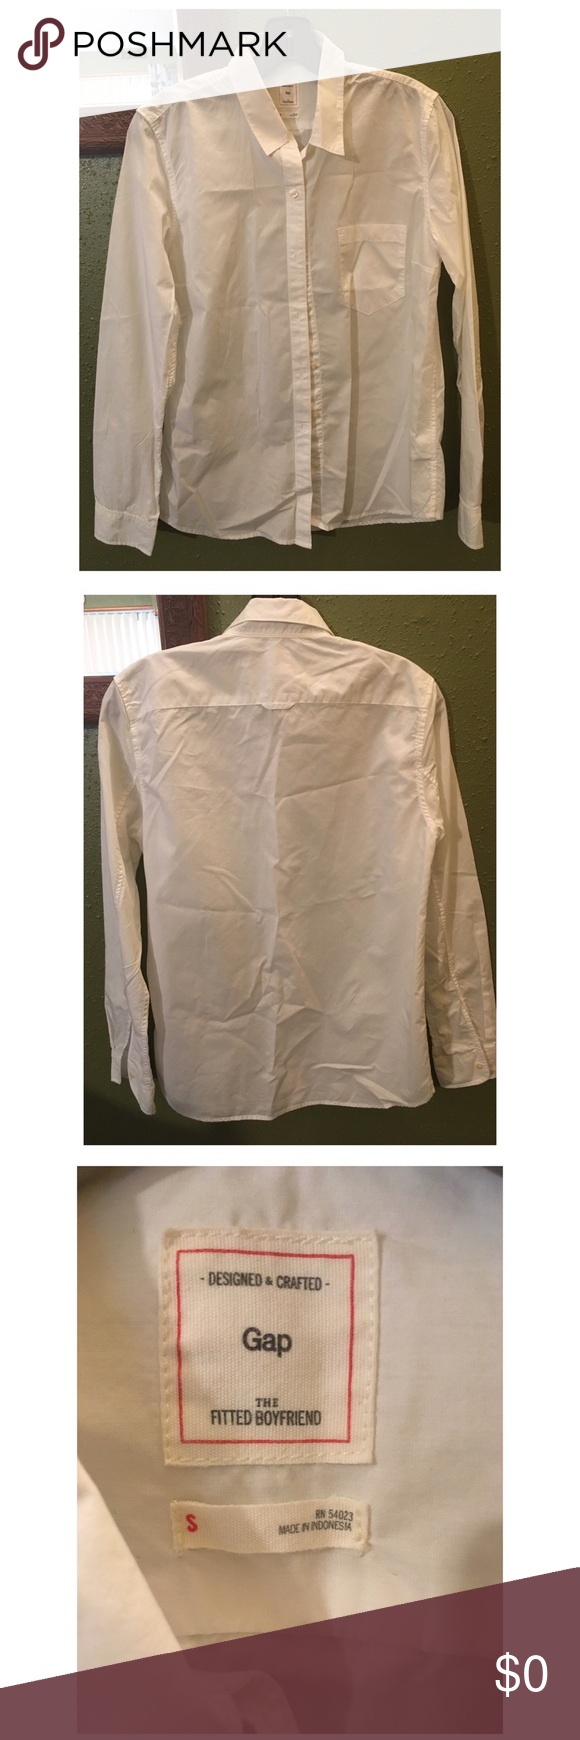 White button down collar shirt Soft and comfy! Wear it with jeans and a your comfiest shoes GAP Tops Button Down Shirts